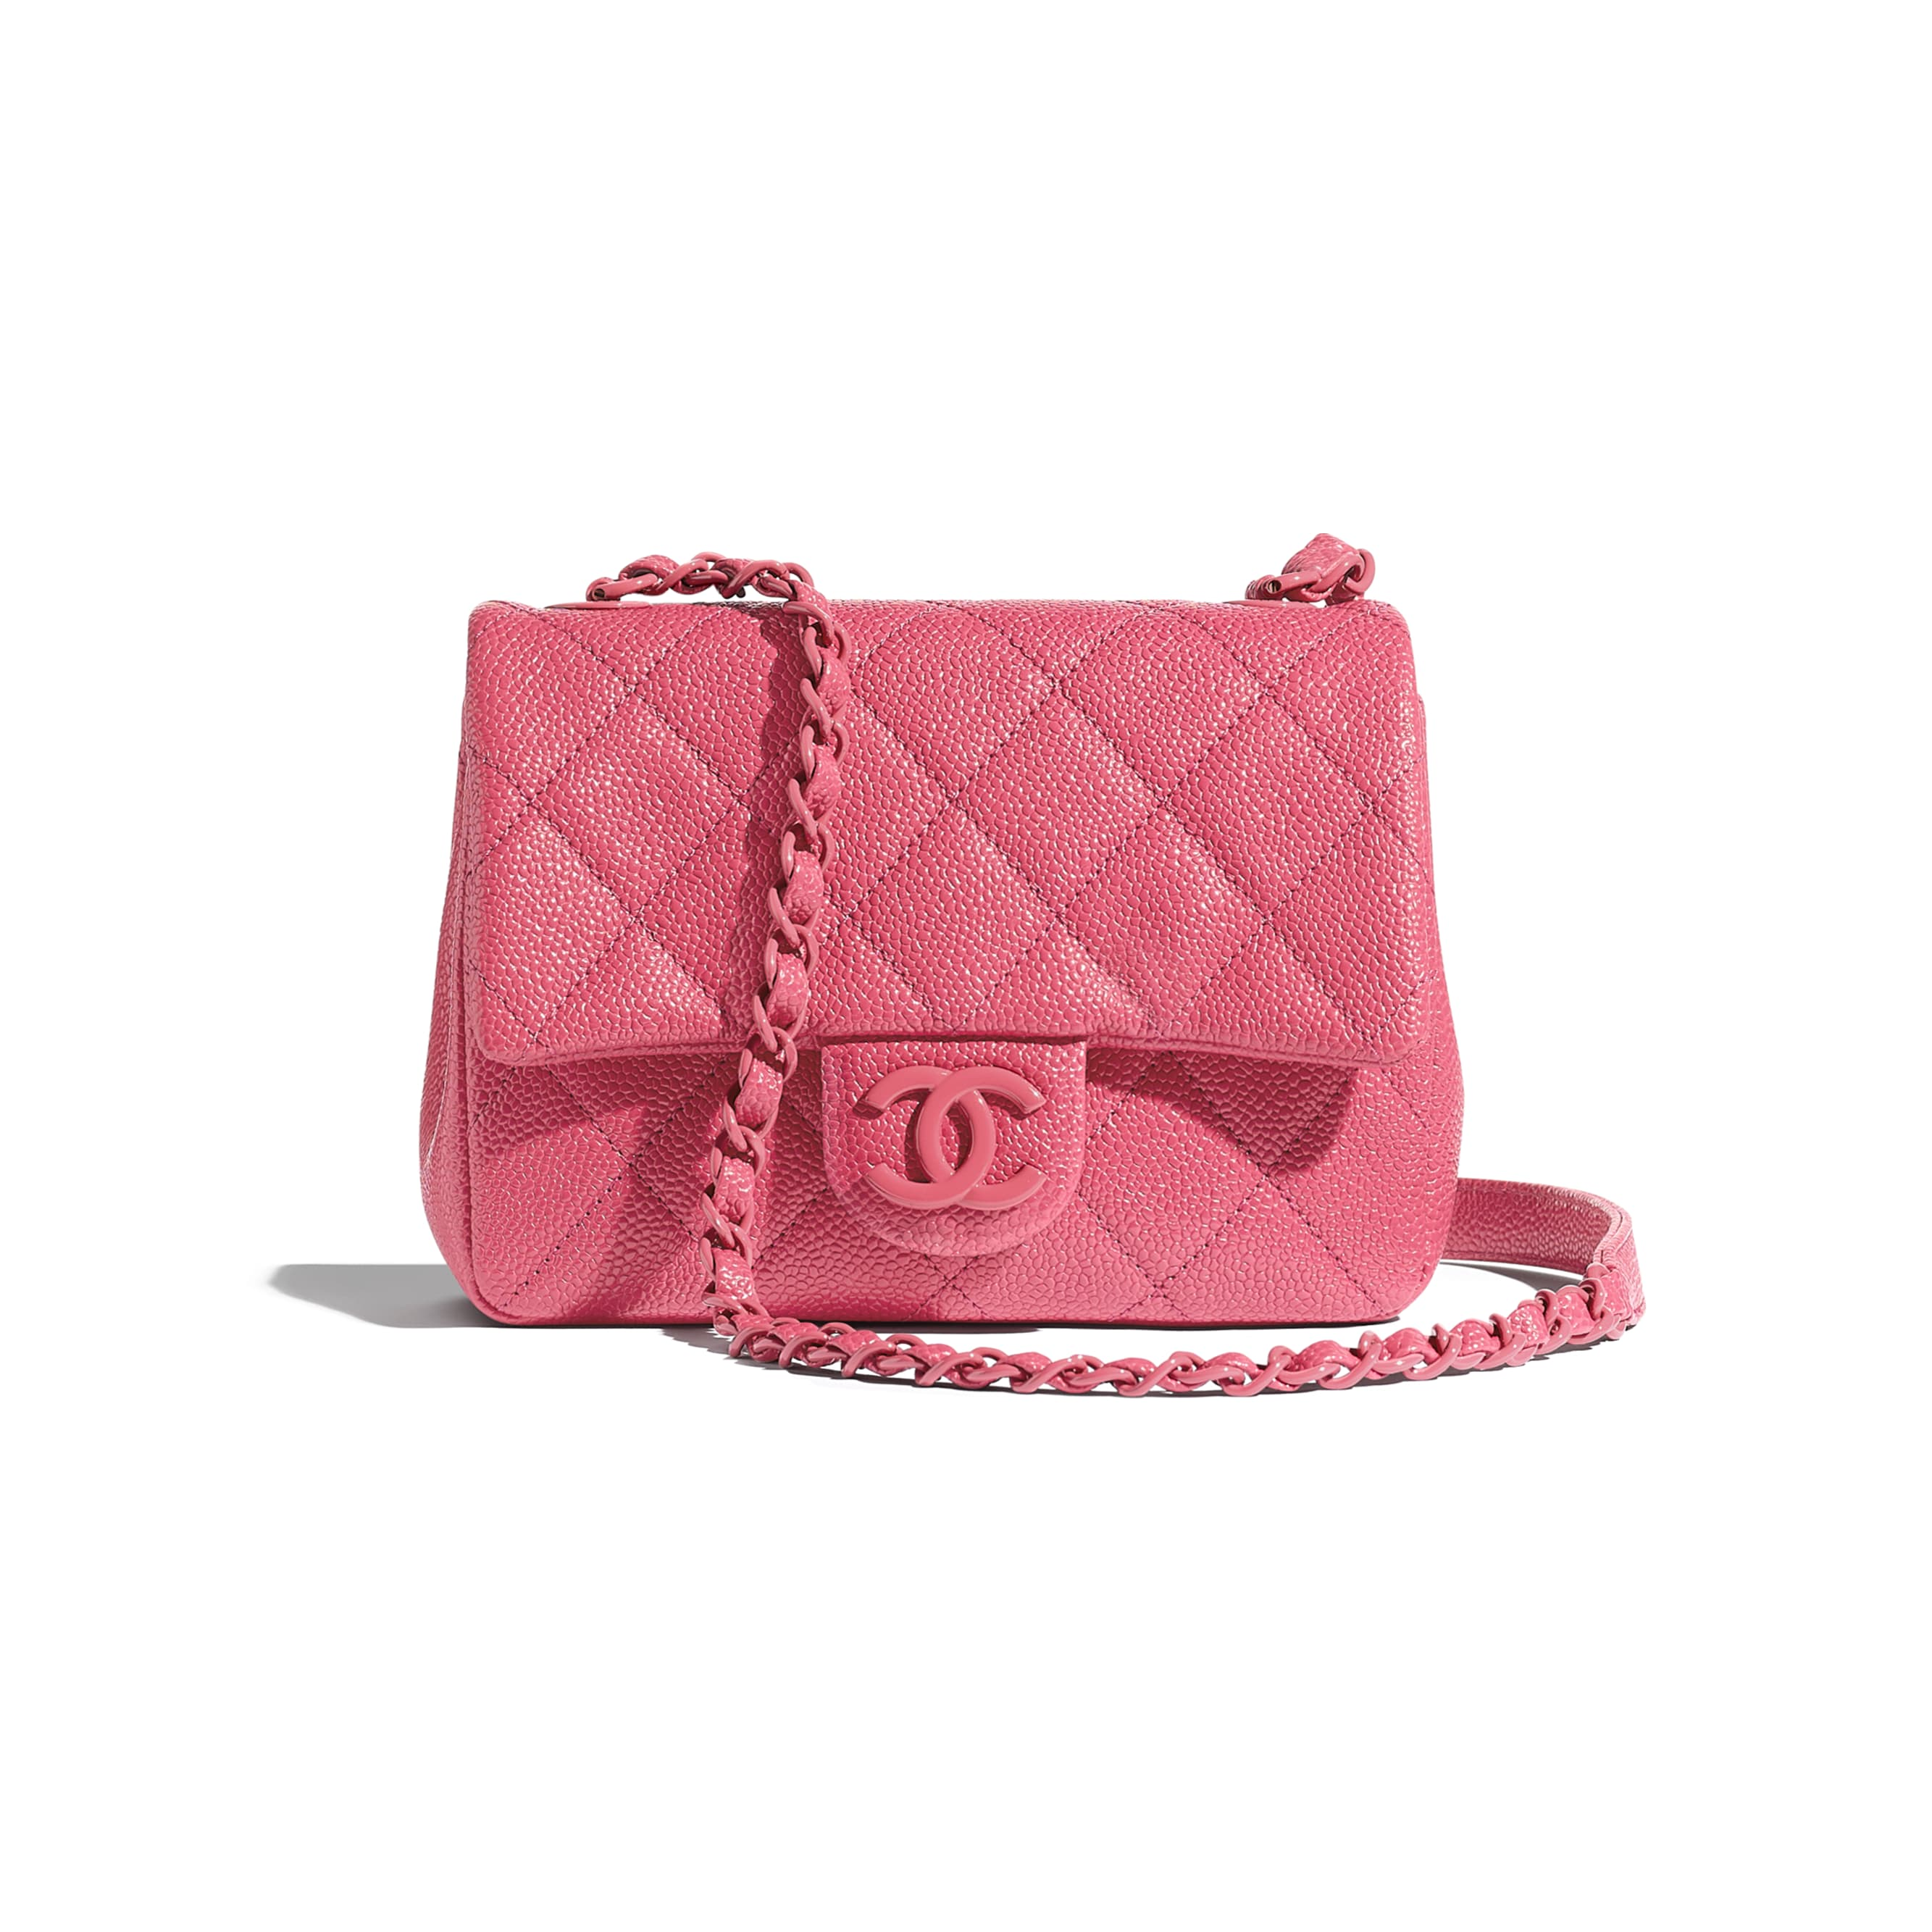 Flap Bag - Light Pink - Grained Calfskin & Lacquered Metal - CHANEL - Default view - see standard sized version